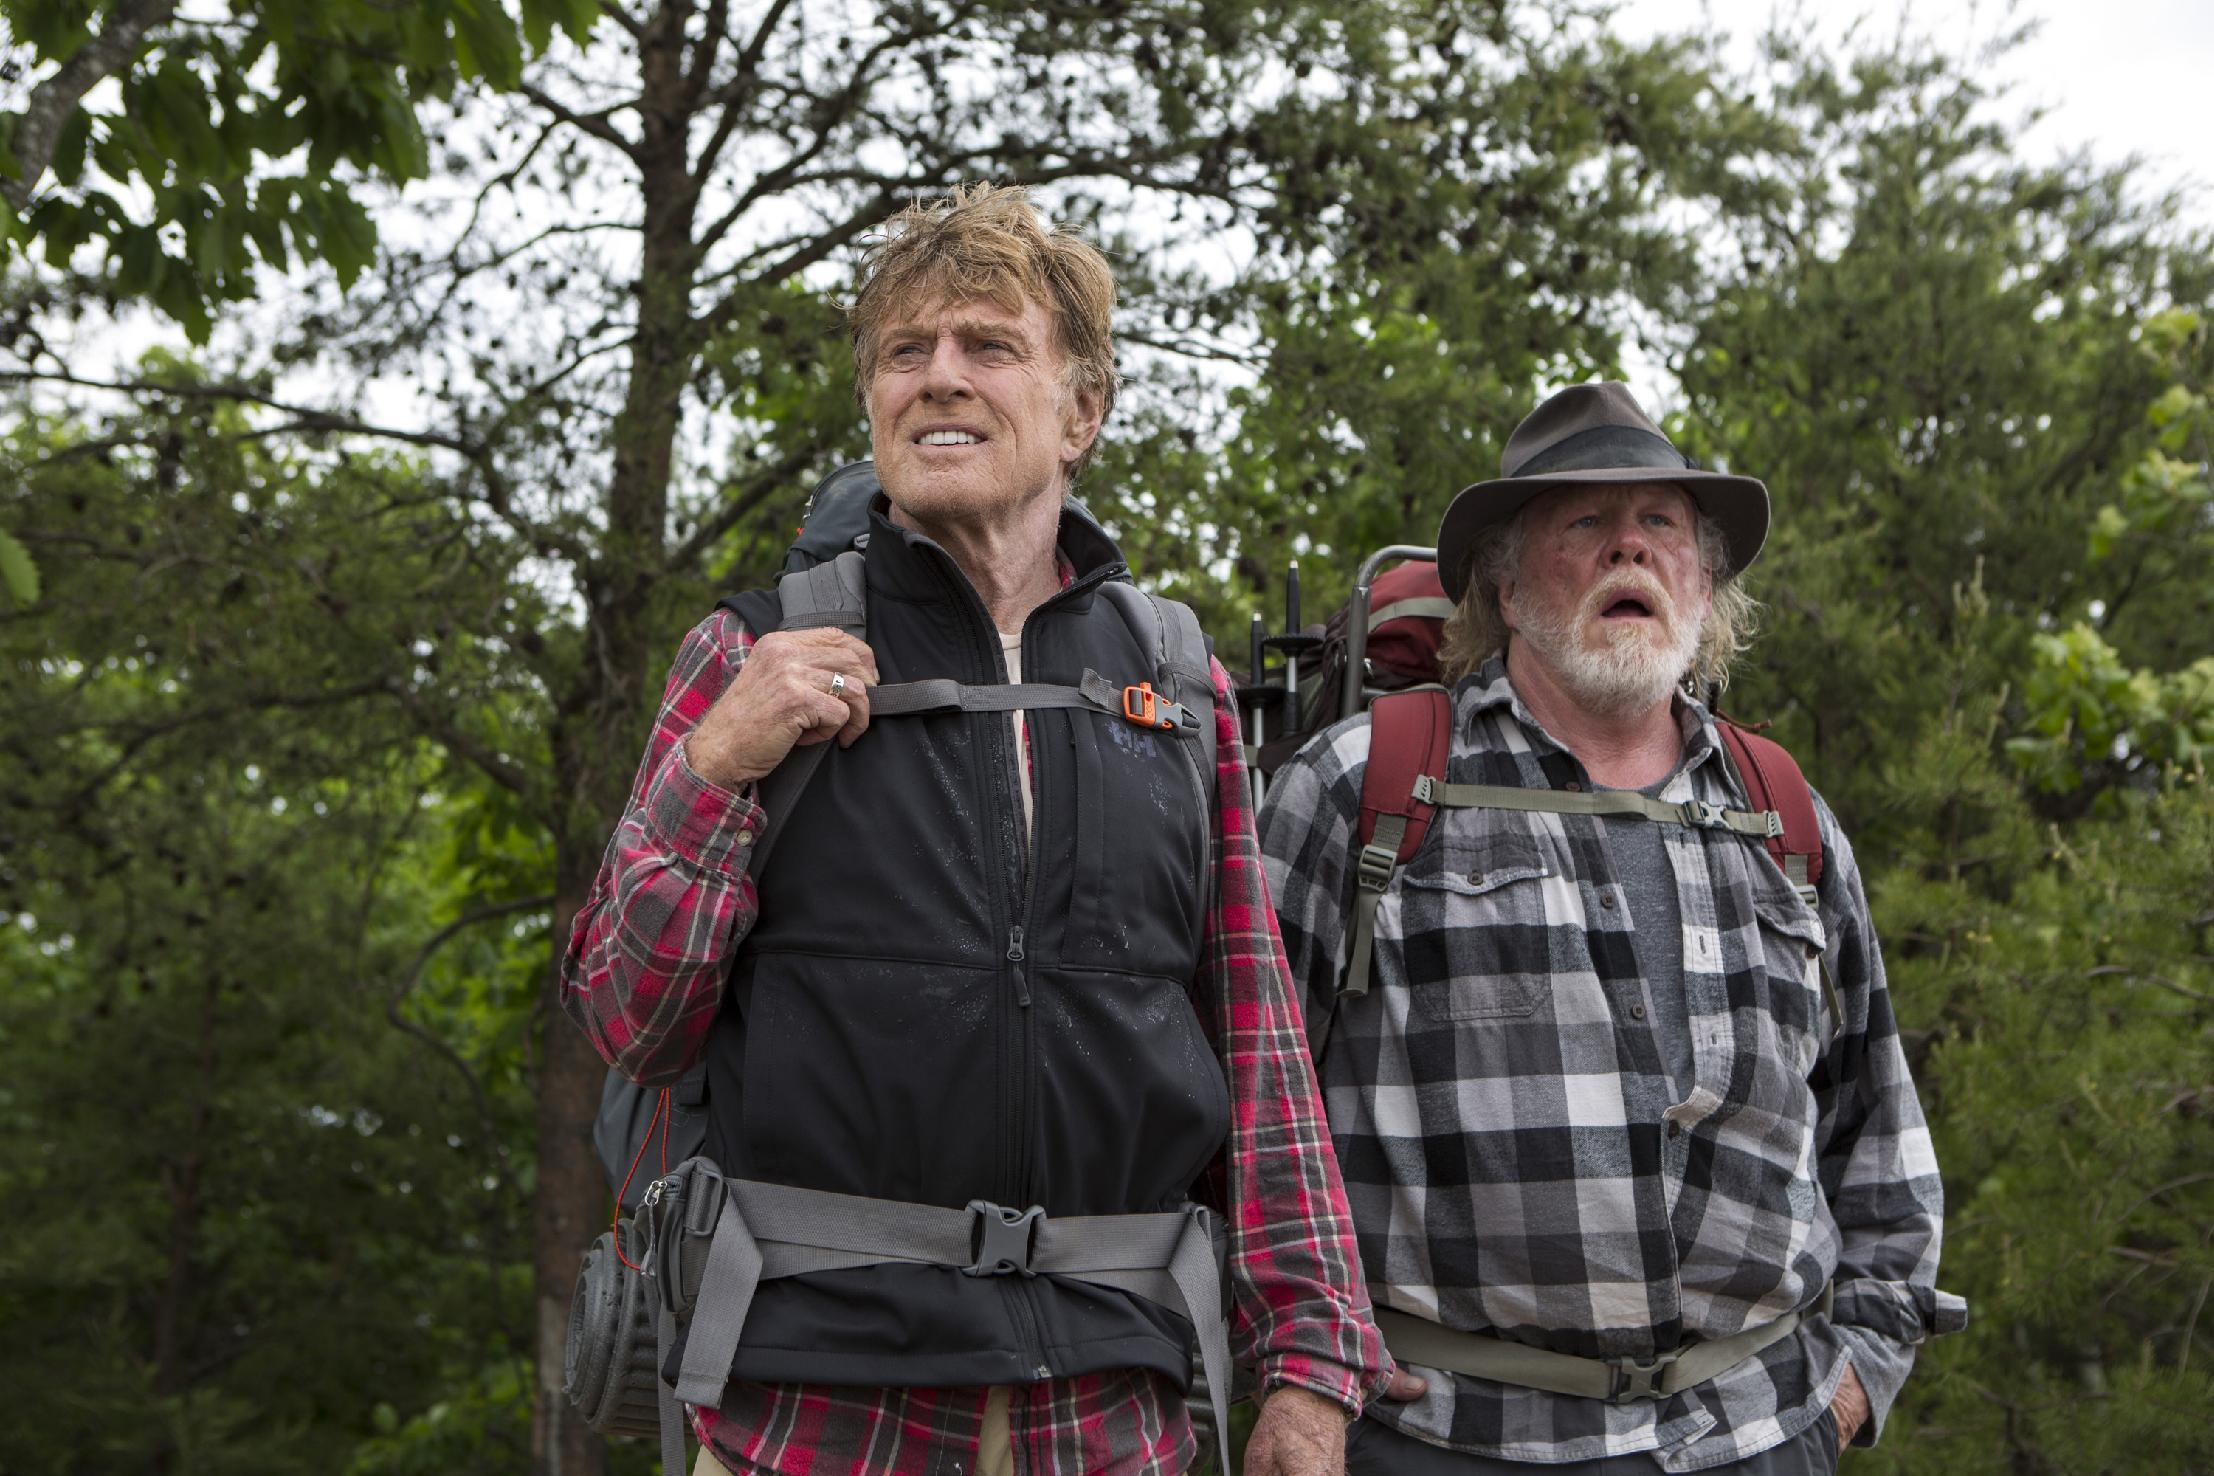 Review: Redford and Nolte in Bryson's 'A Walk in the Woods'